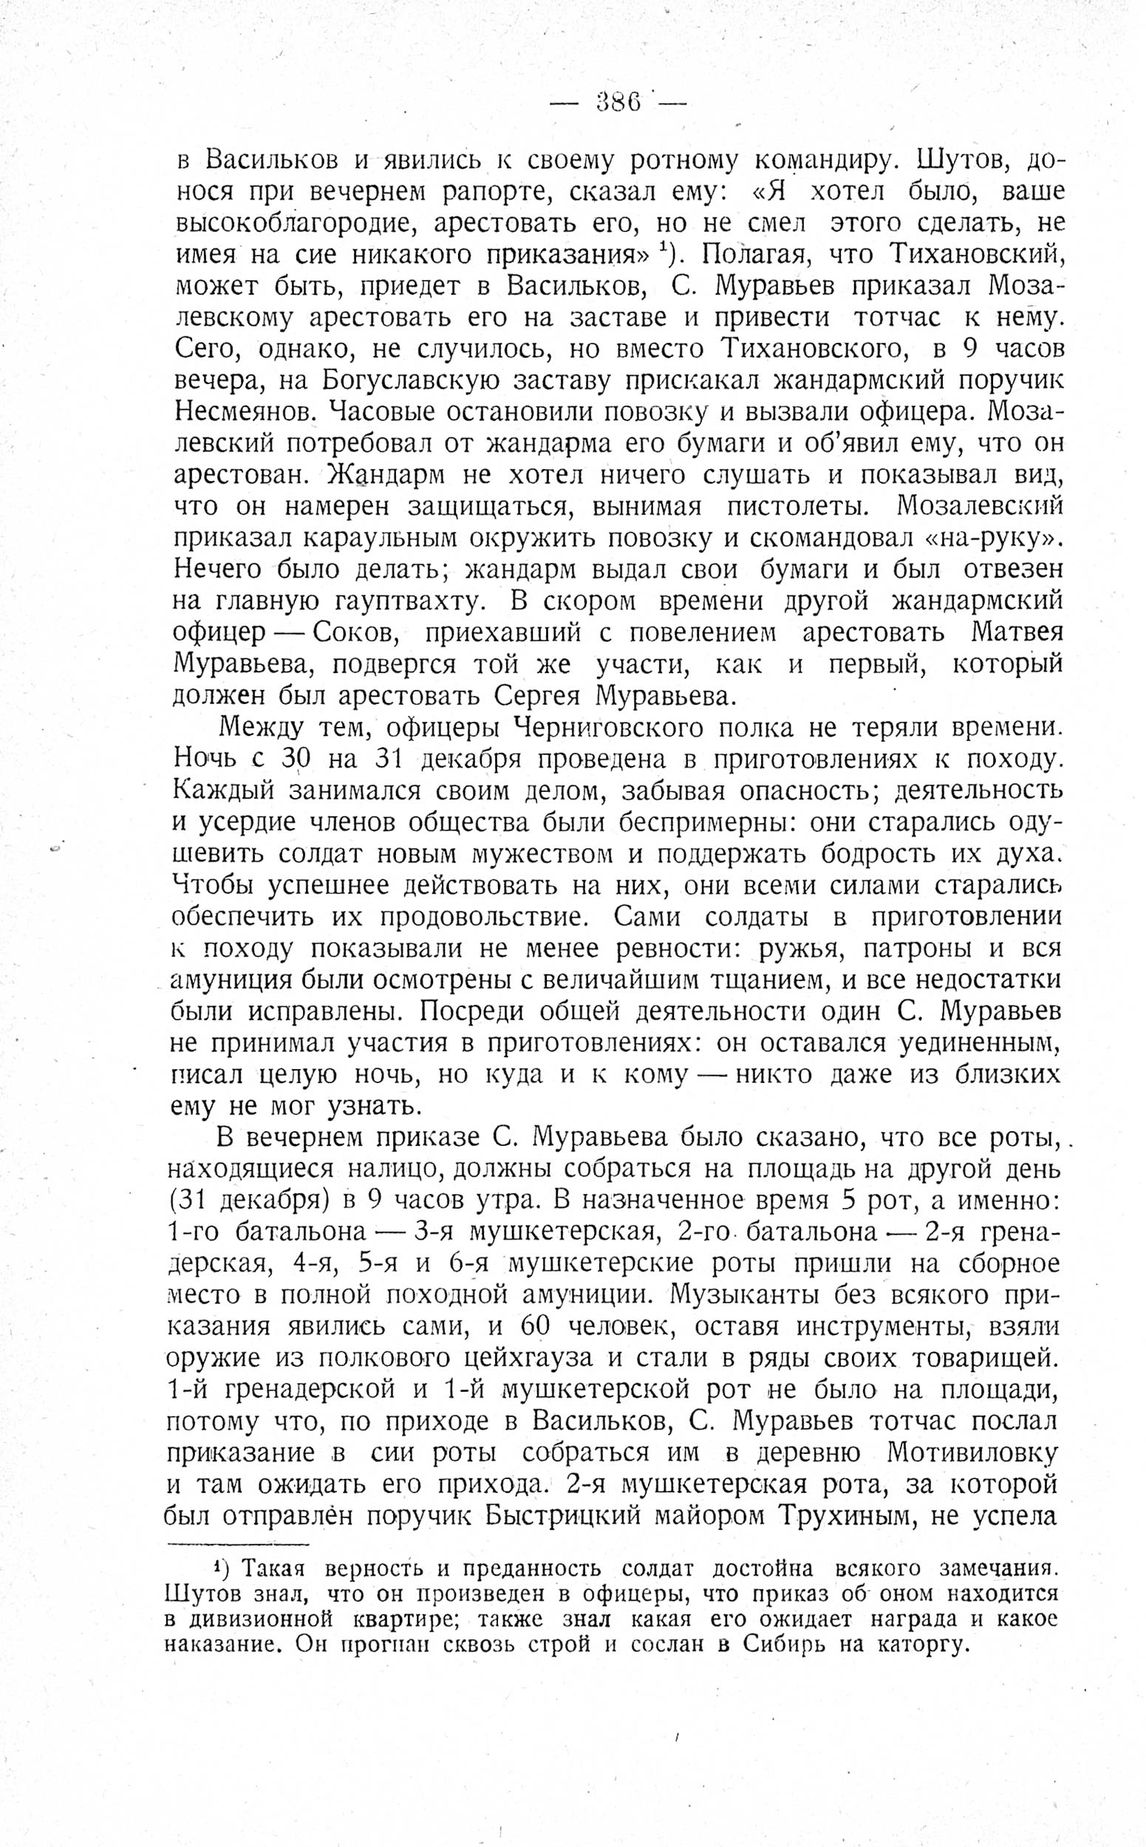 http://elib.shpl.ru/pages/625969/zooms/7